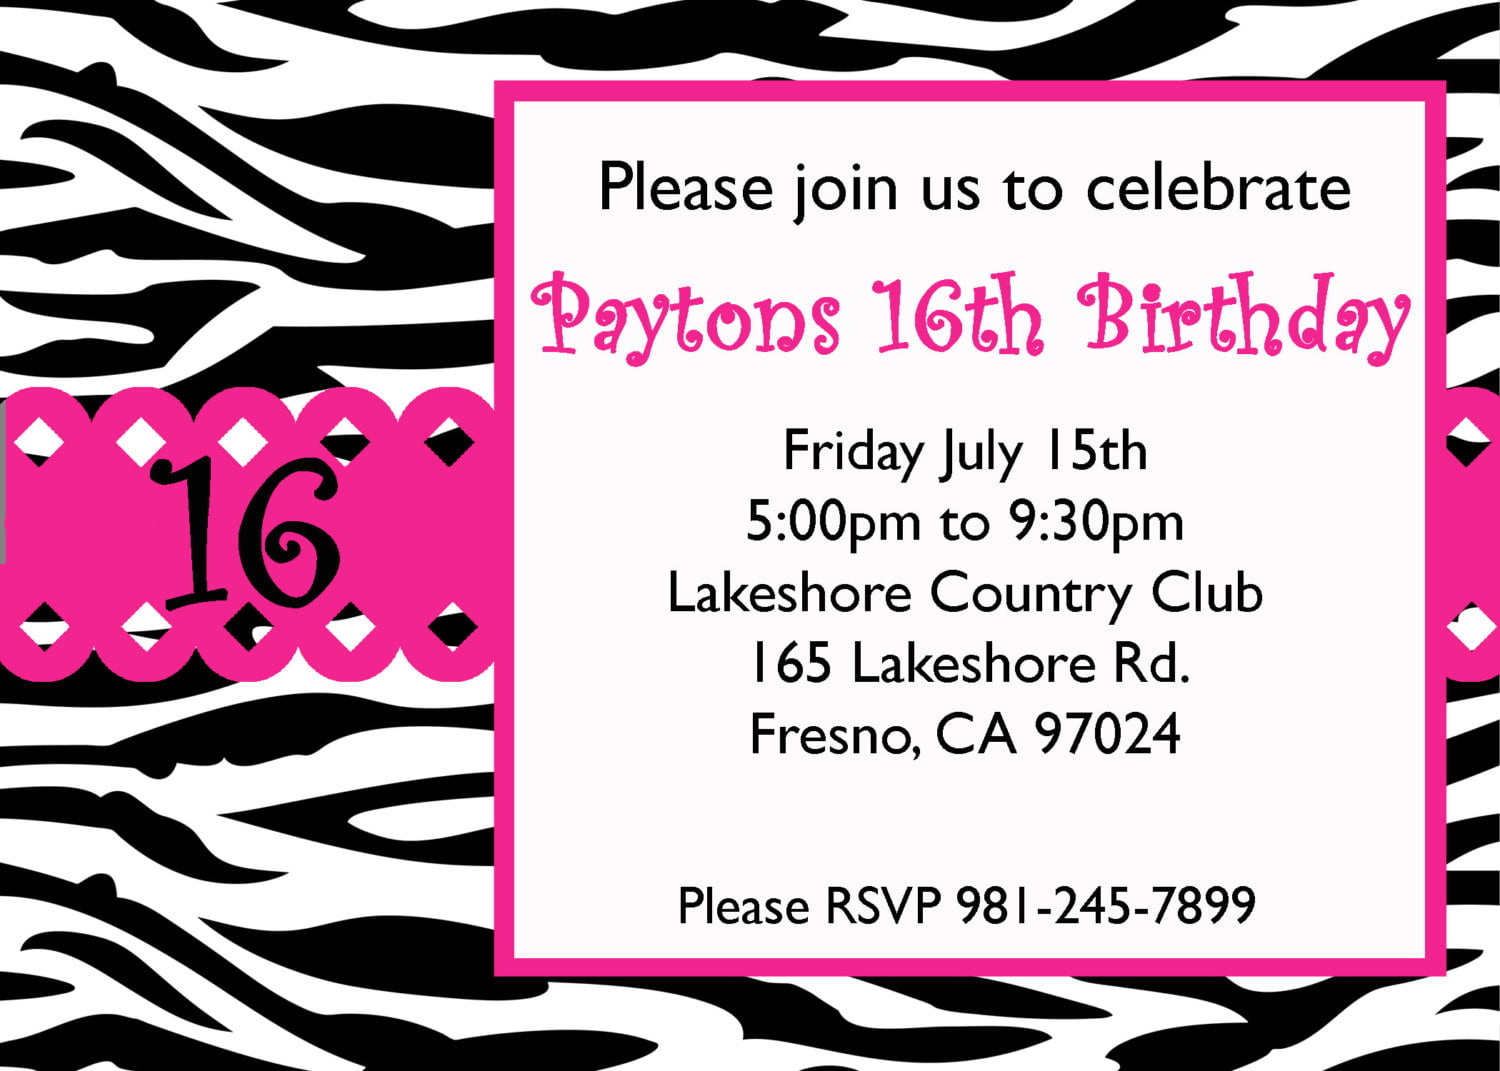 Surprise Invitation Wording was beautiful invitations design